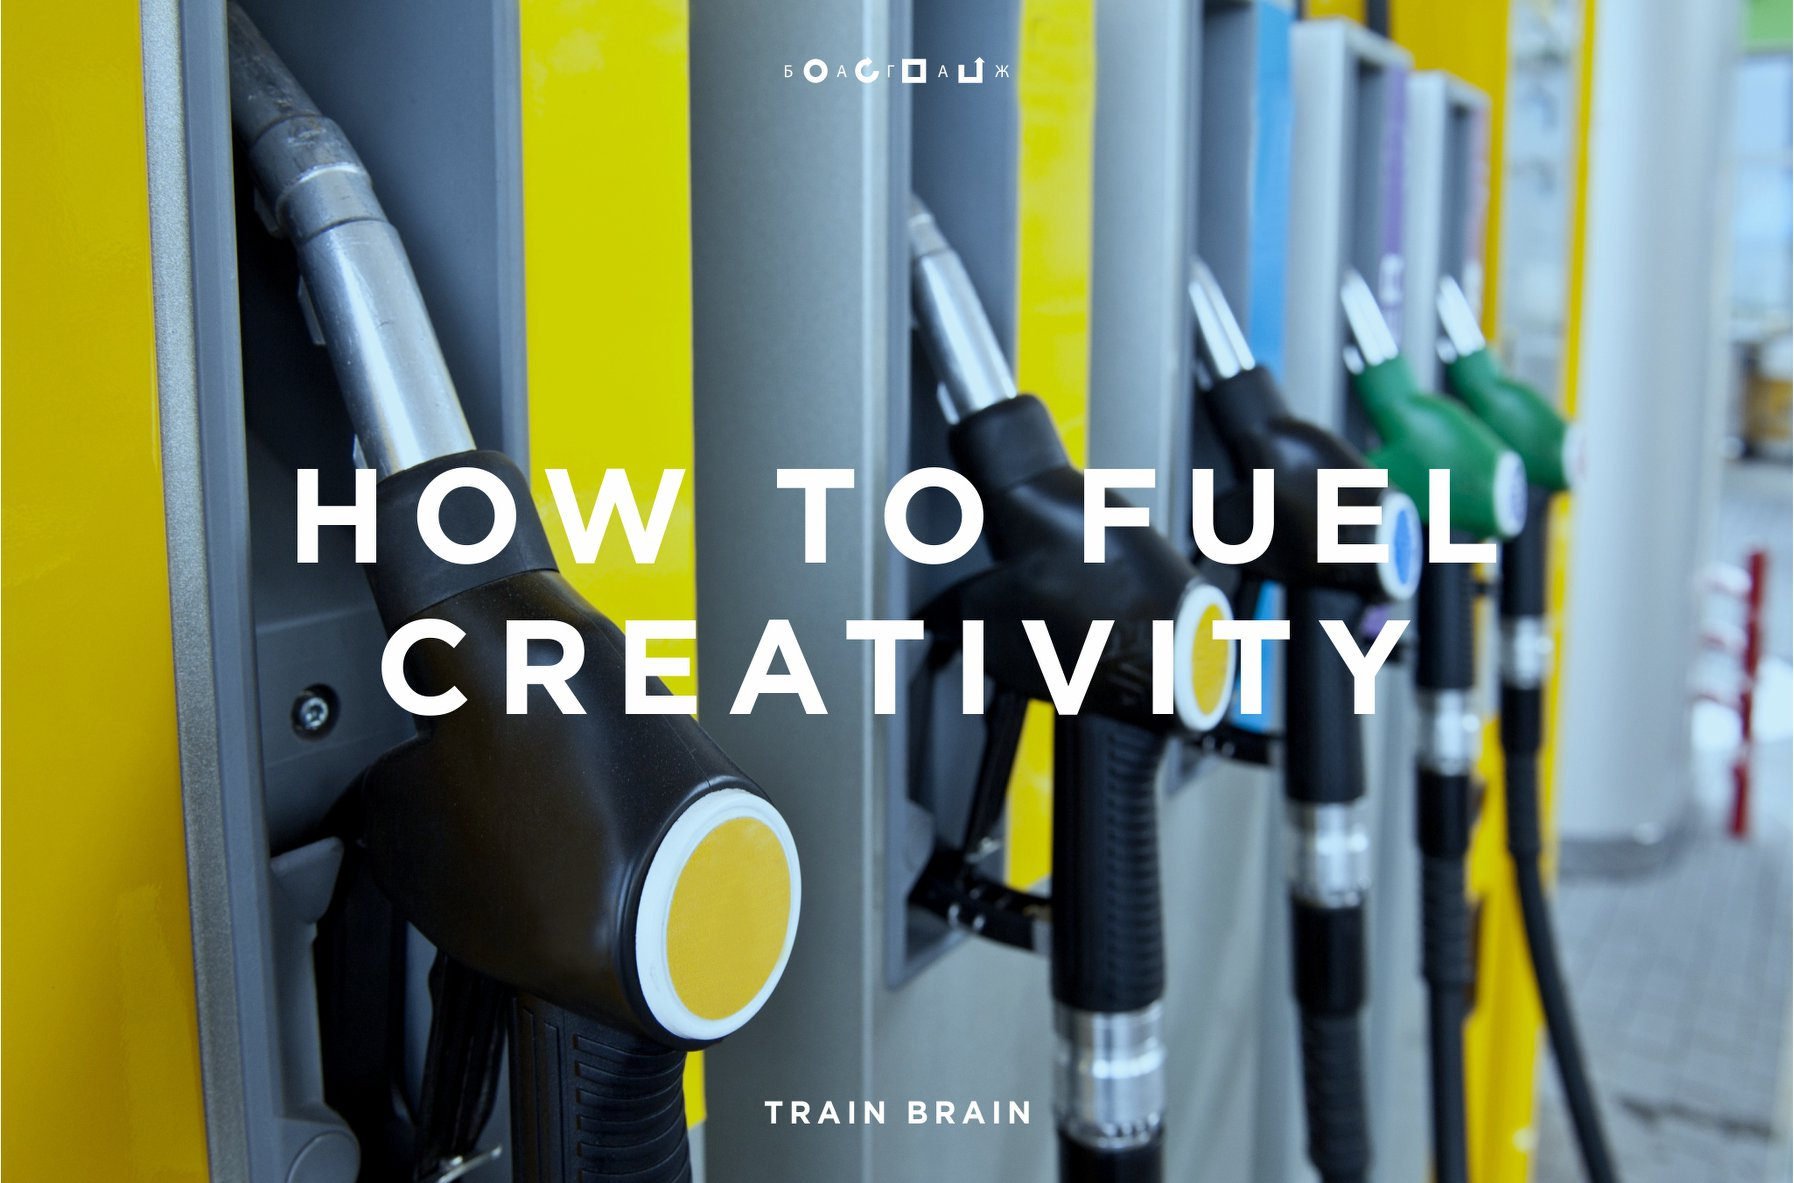 05_АПРЕЛЬ_HOW TO FUEL CREATIVITY